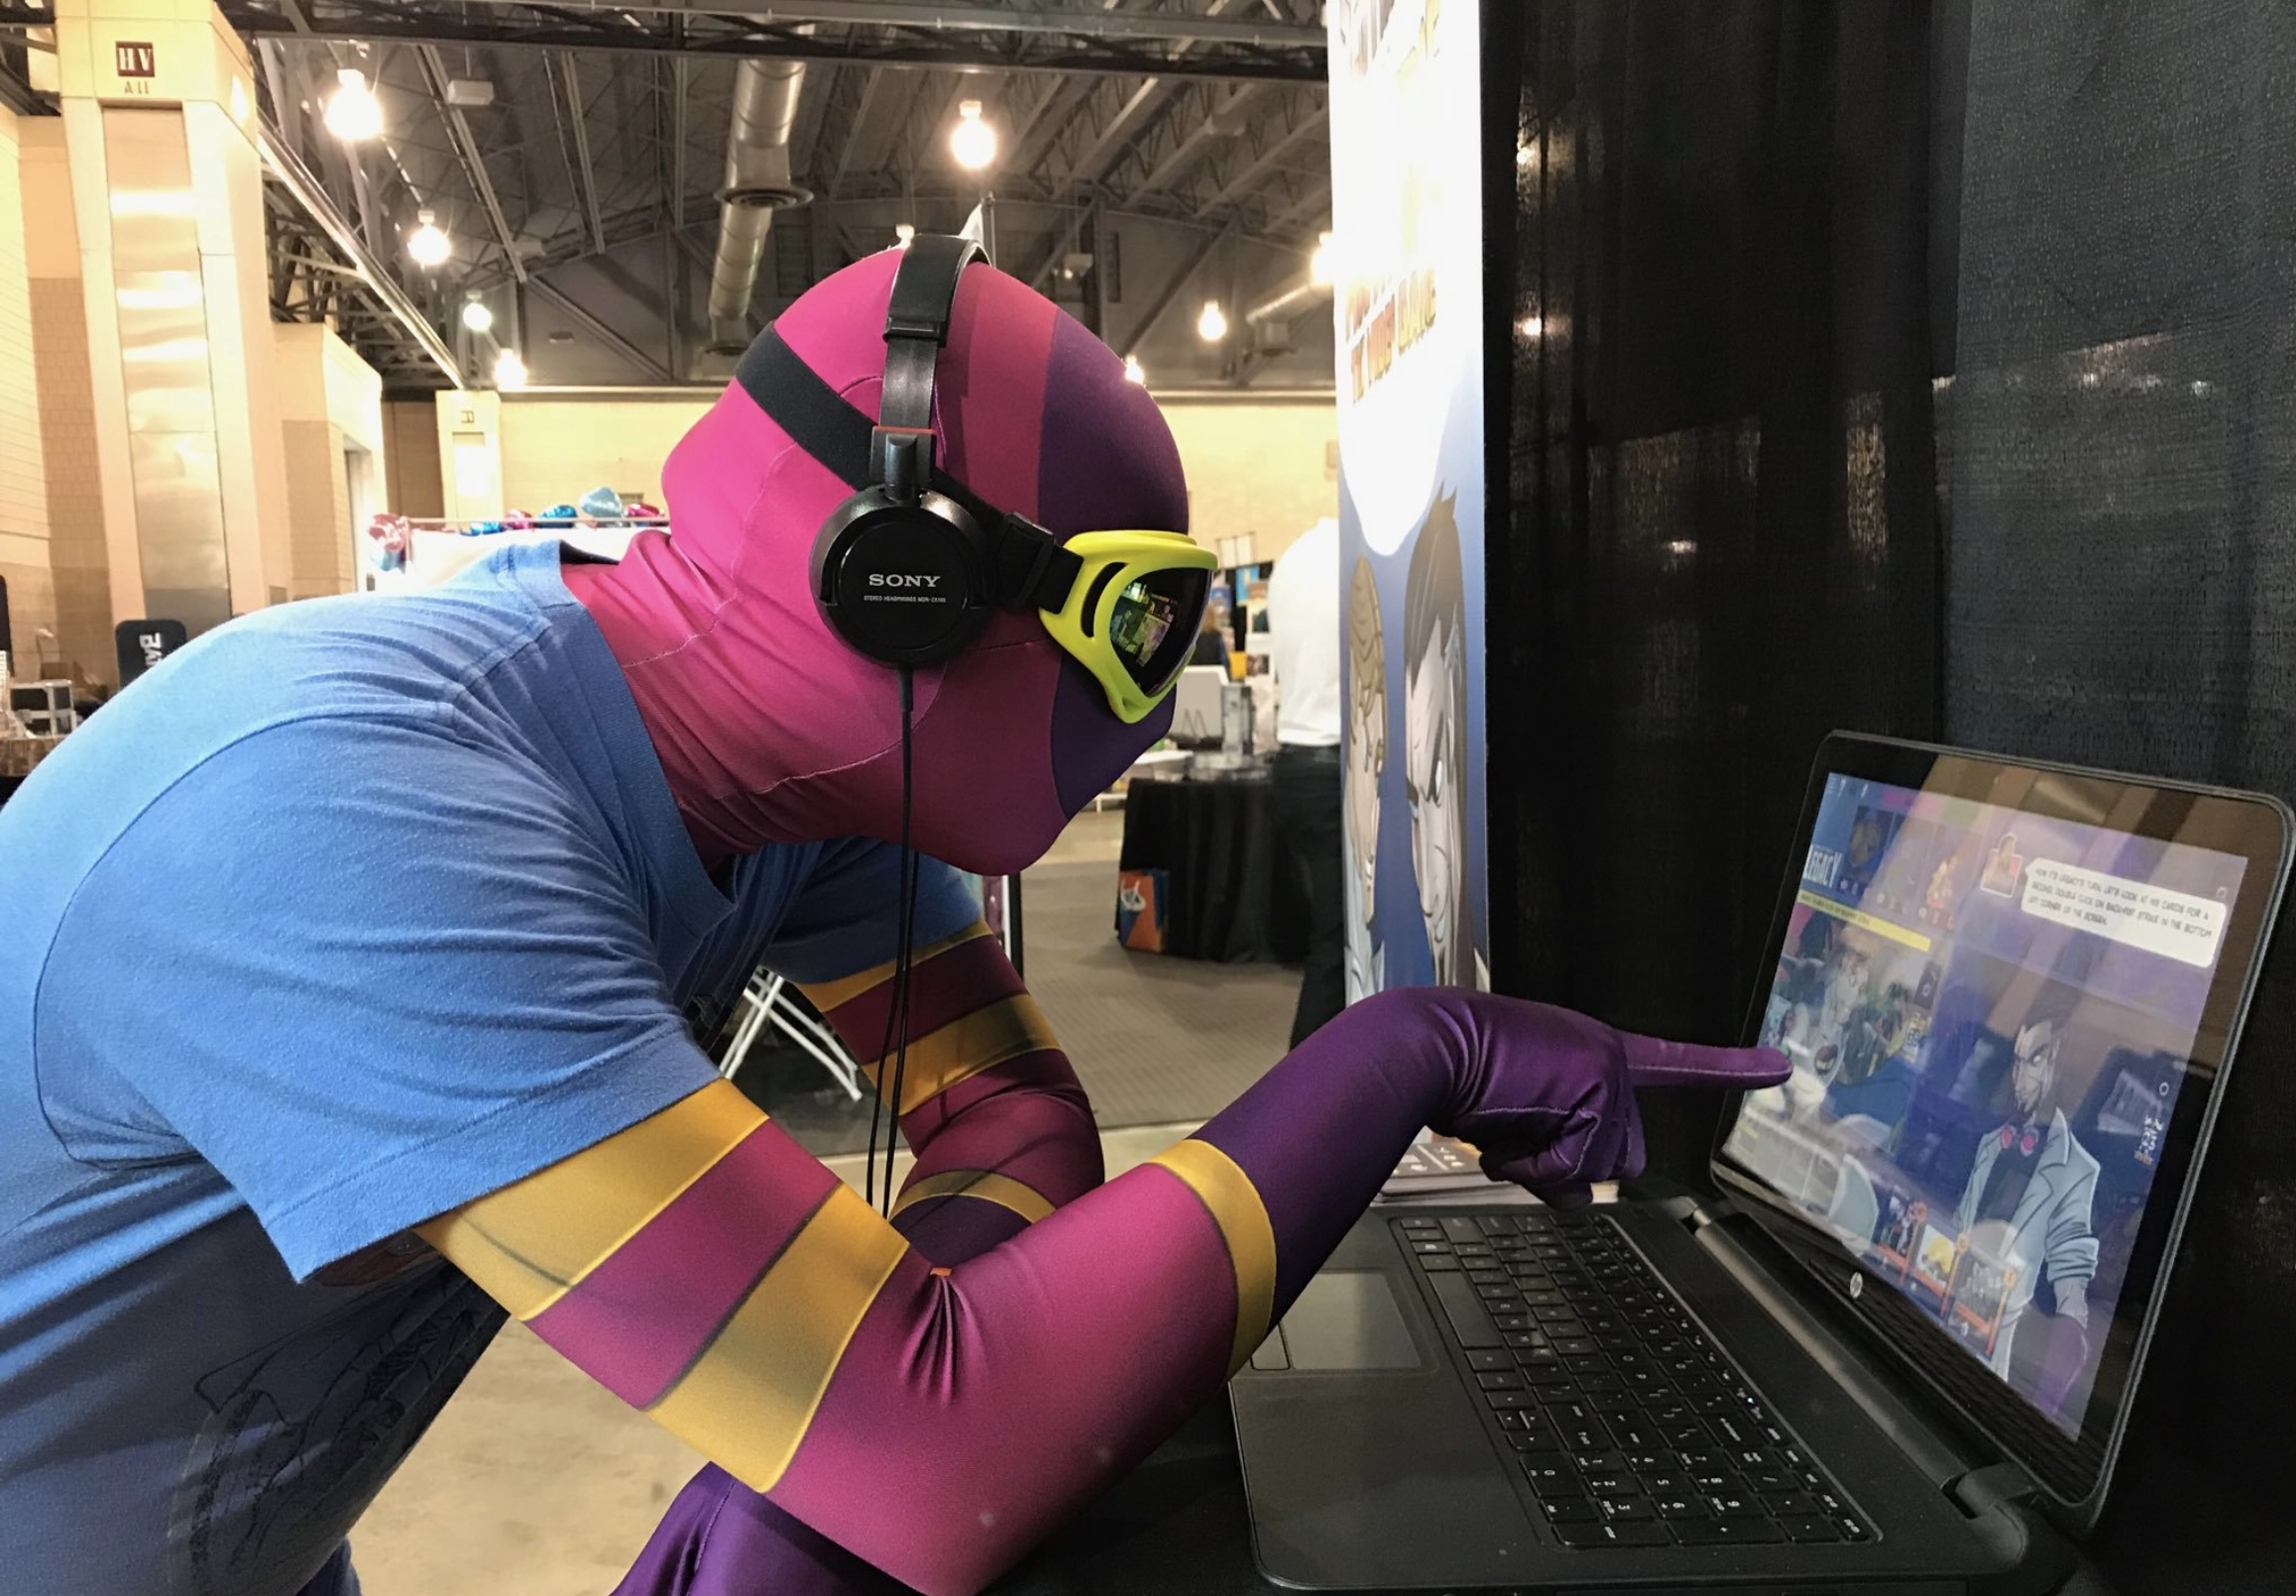 PAX Unplugged 2017 -  Jeremy  as Guise as a Con Attendee